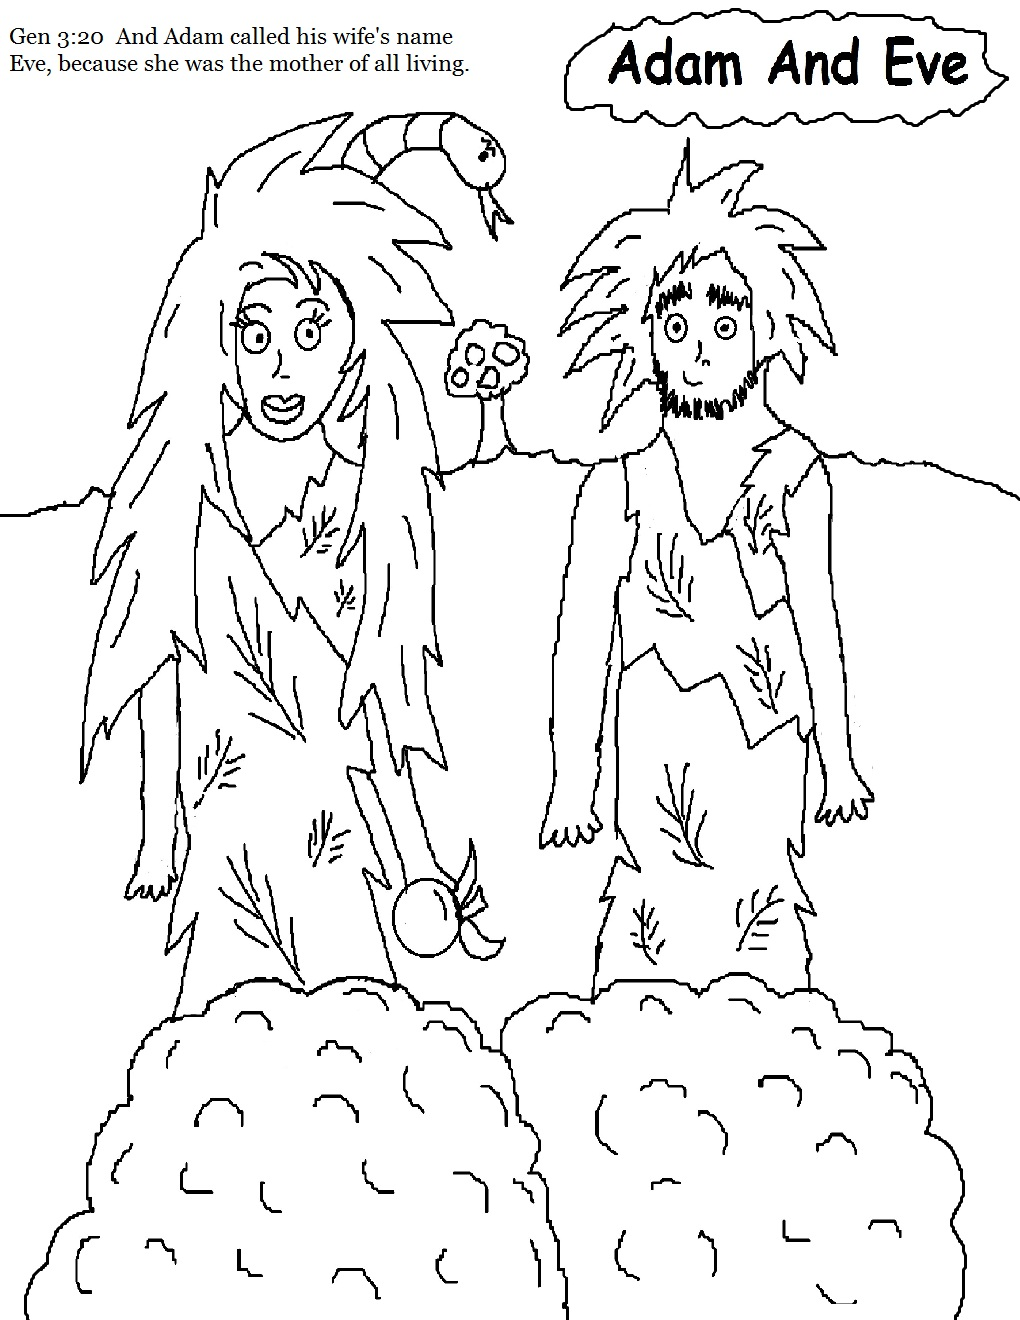 Adam And Eve Coloring Pages Unique Adam And Eve Coloring Pages Decorating Inspiration